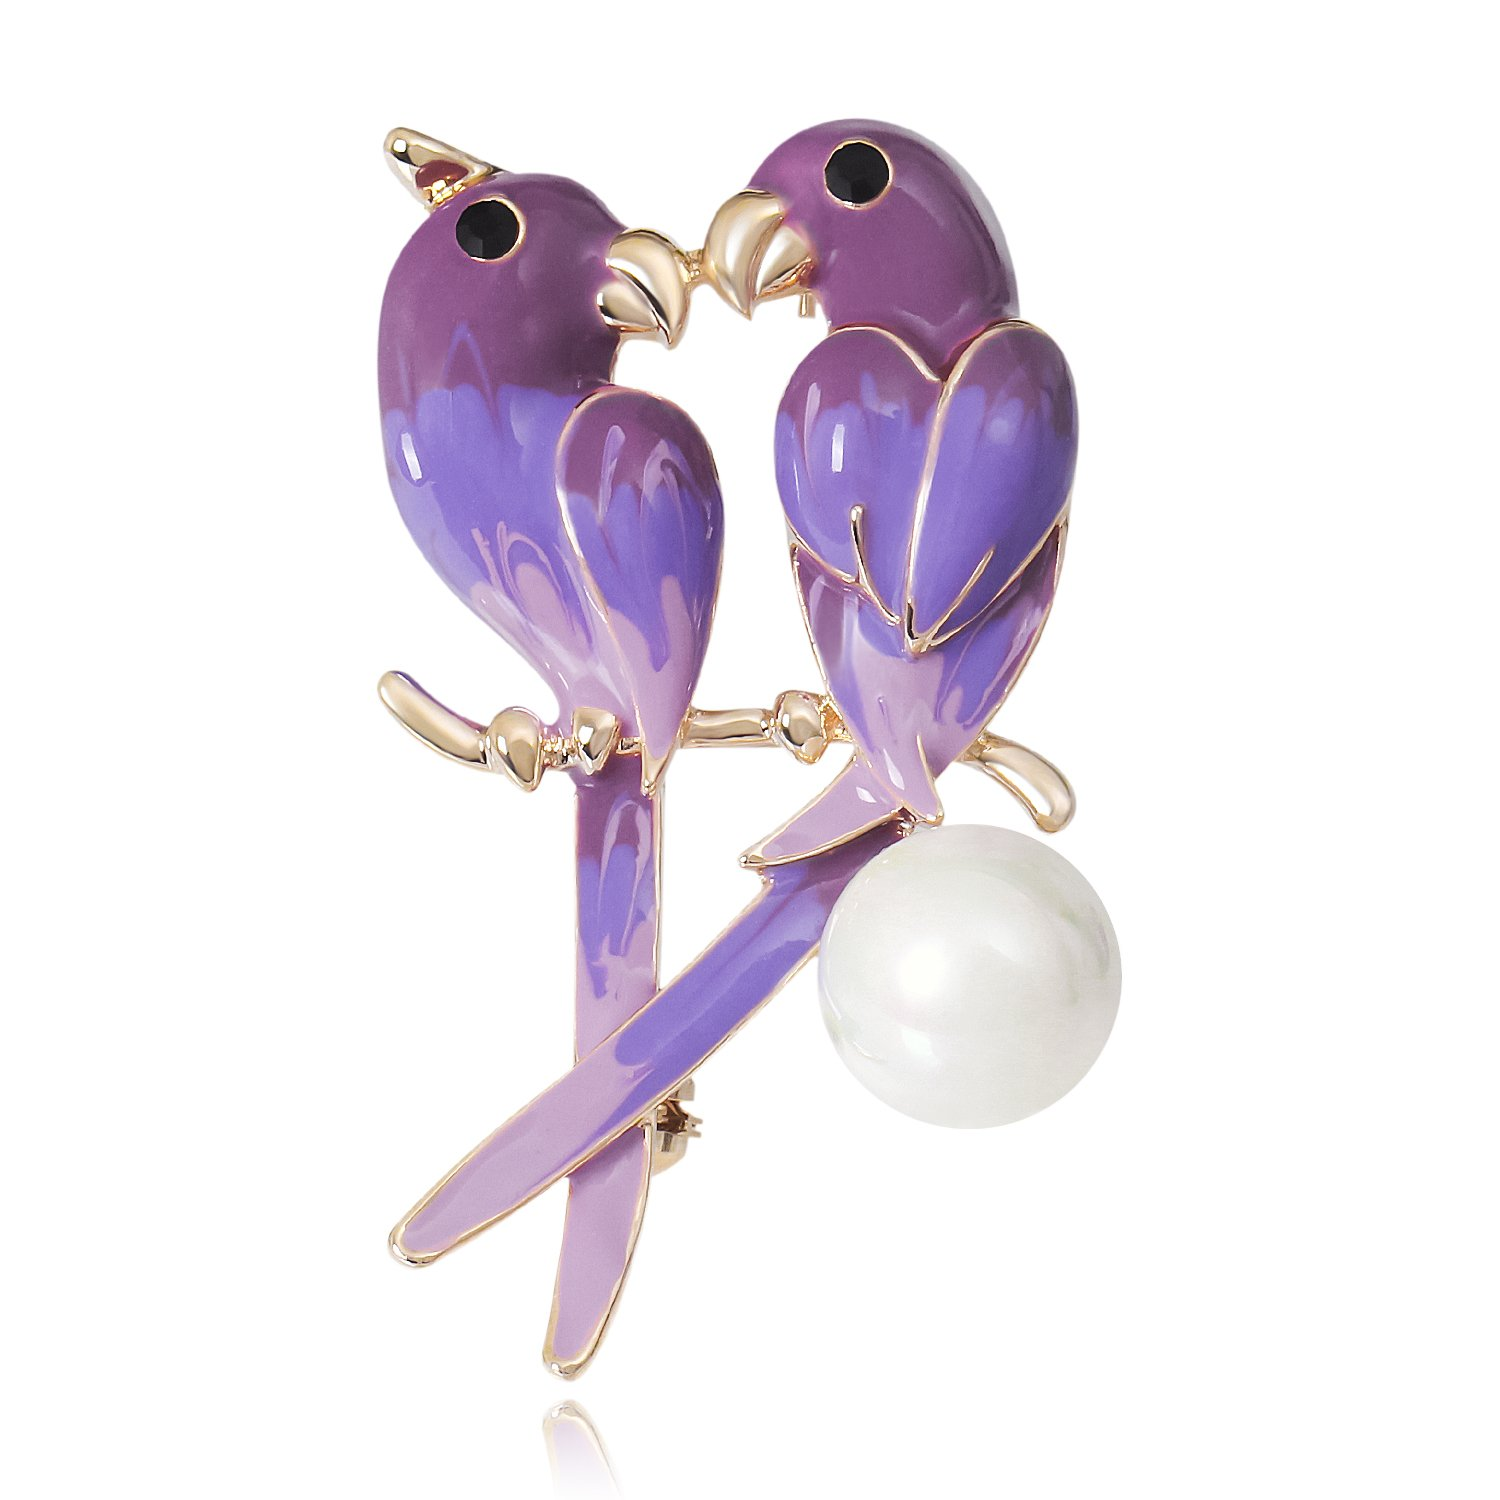 DMI Unique Jewelry Gold-Tone Simulated Pearl Enameled Sweet Love Bird Pin Brooch Purple